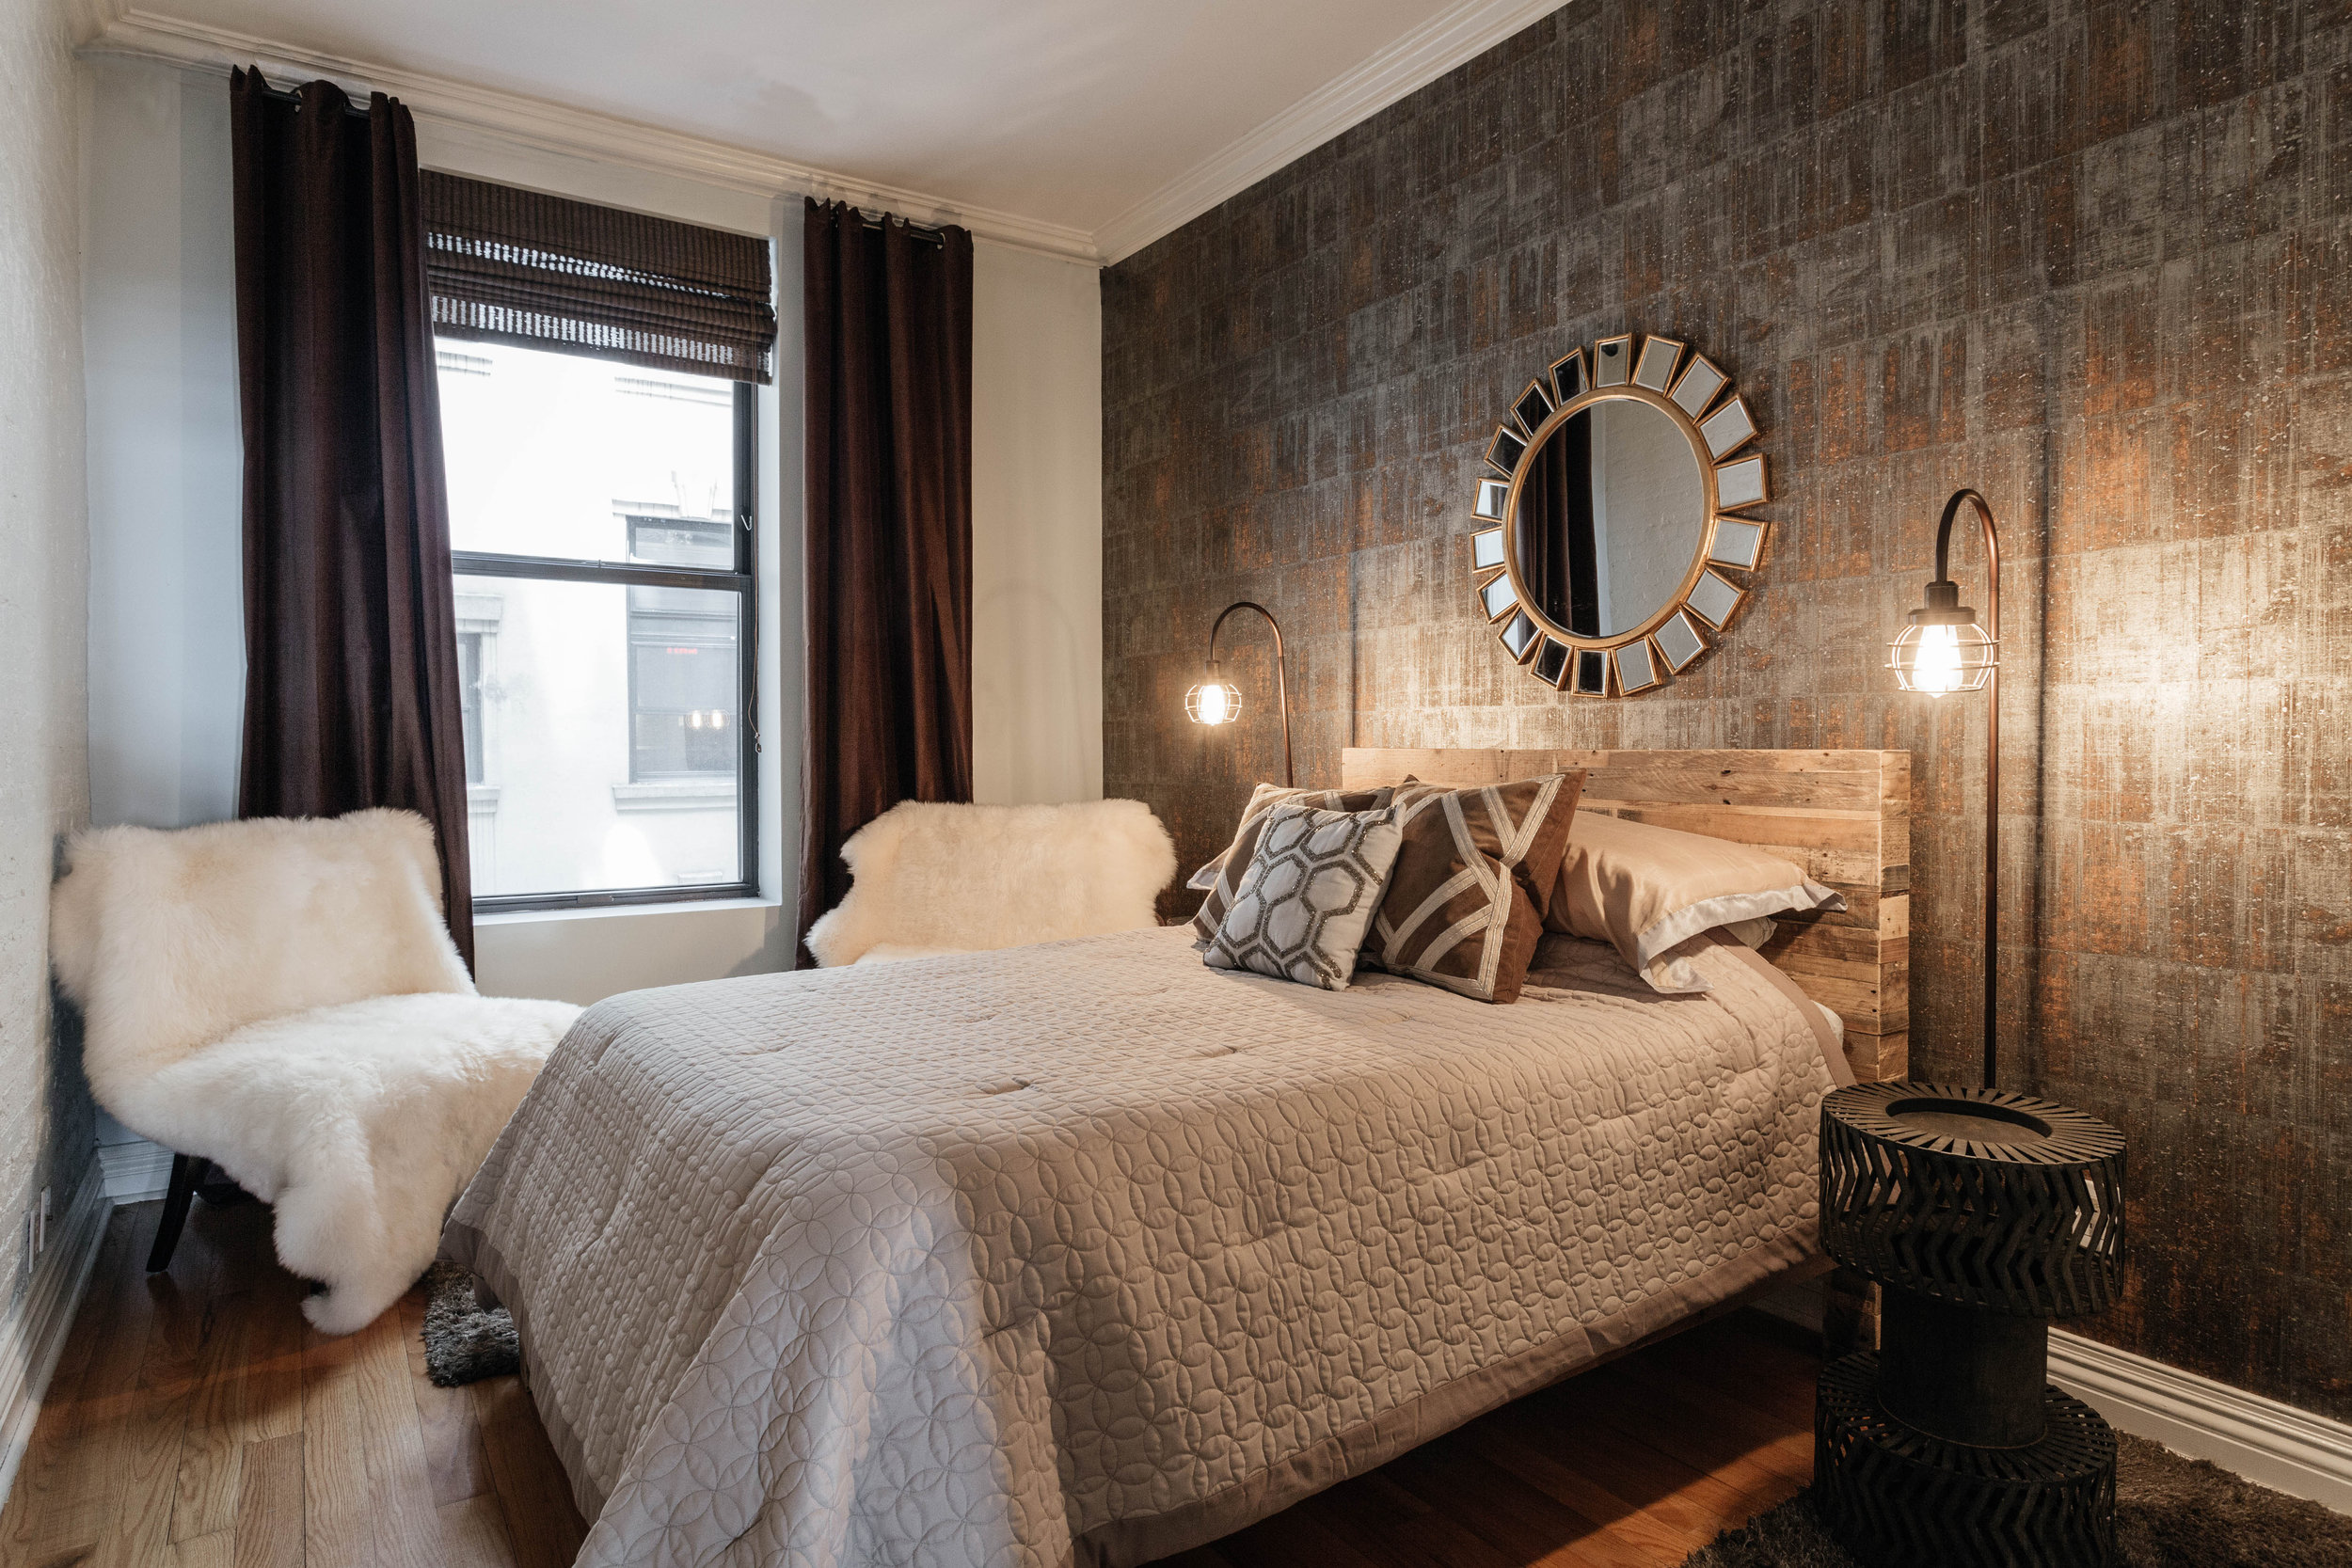 Bedroom with dark textured wall and standing bare bulb lamps